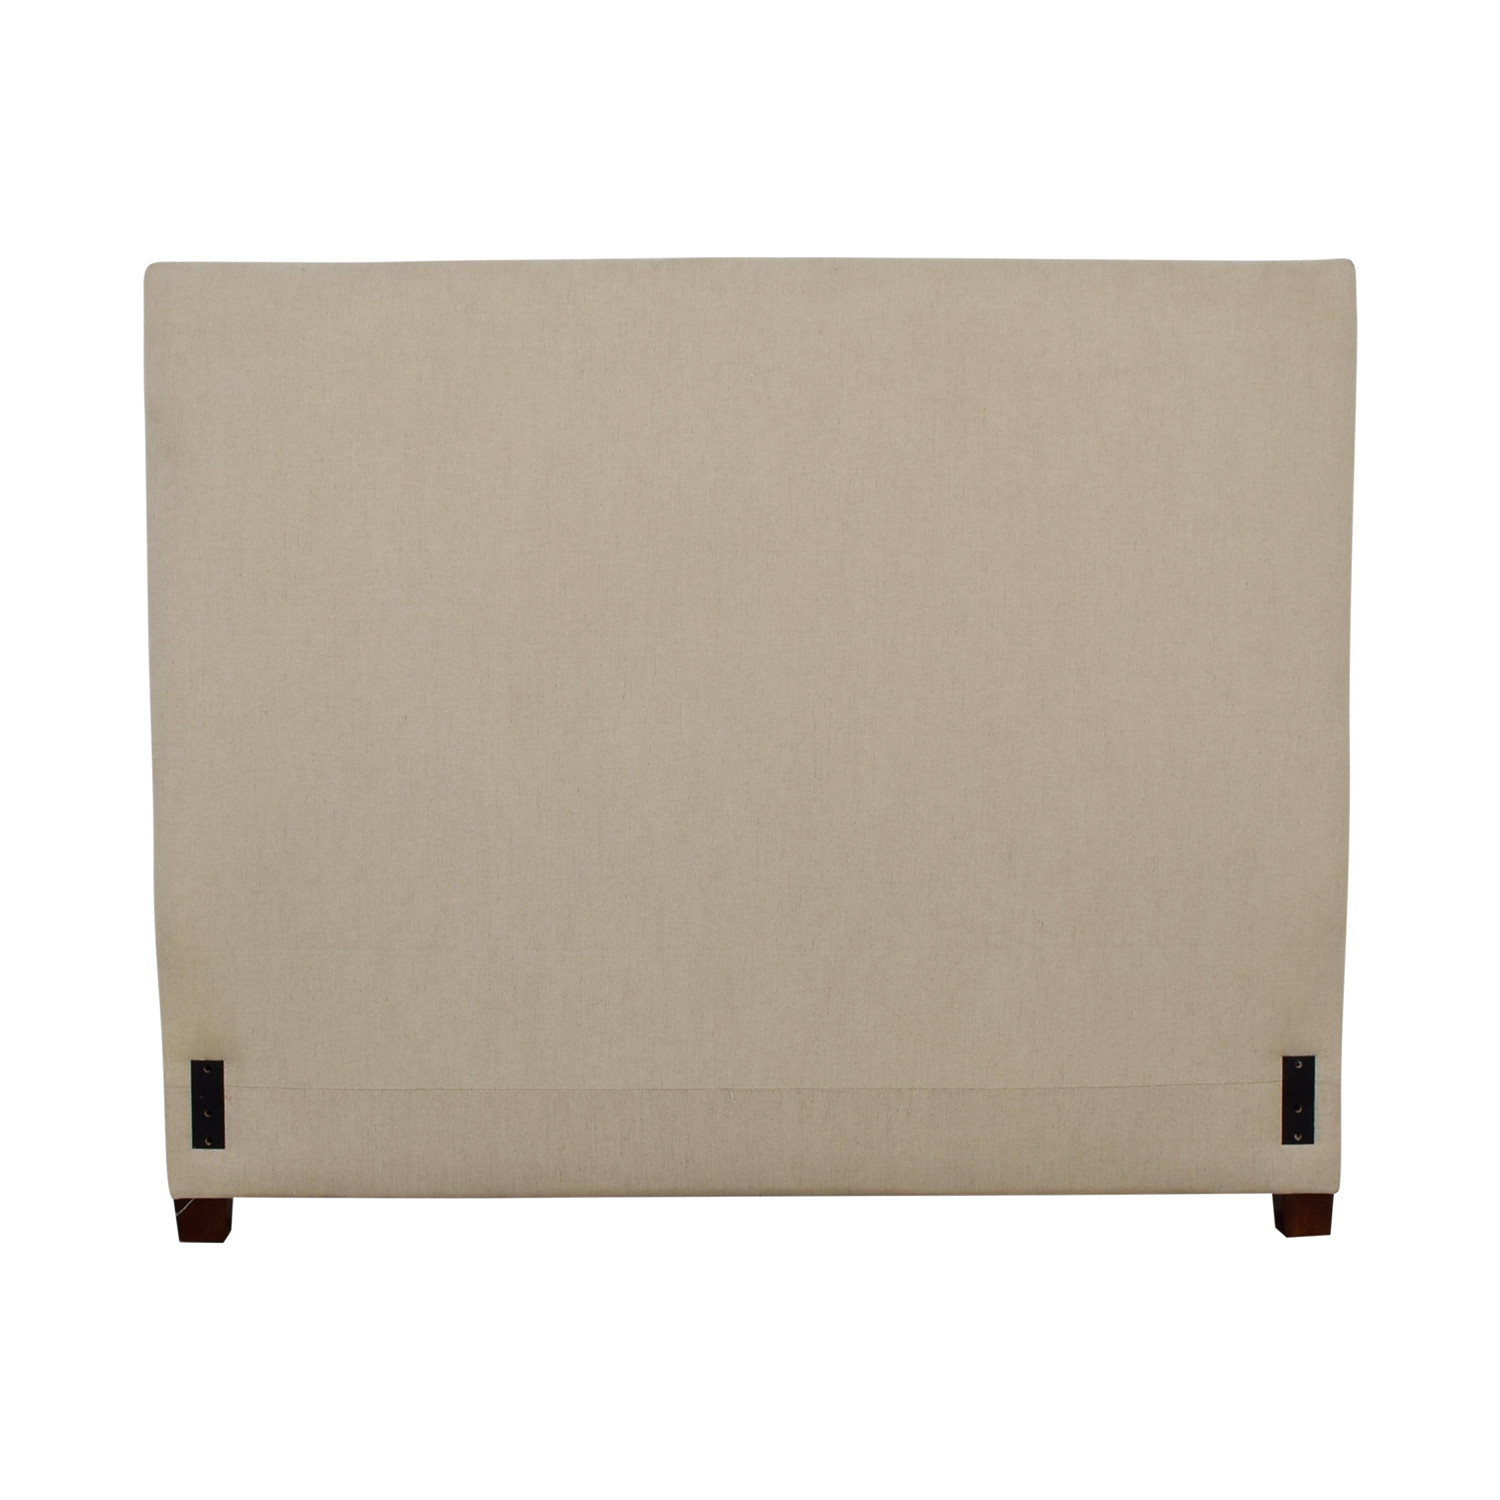 Pottery Barn Pottery Barn Square Beige Nailhead Upholstered Queen Headboard